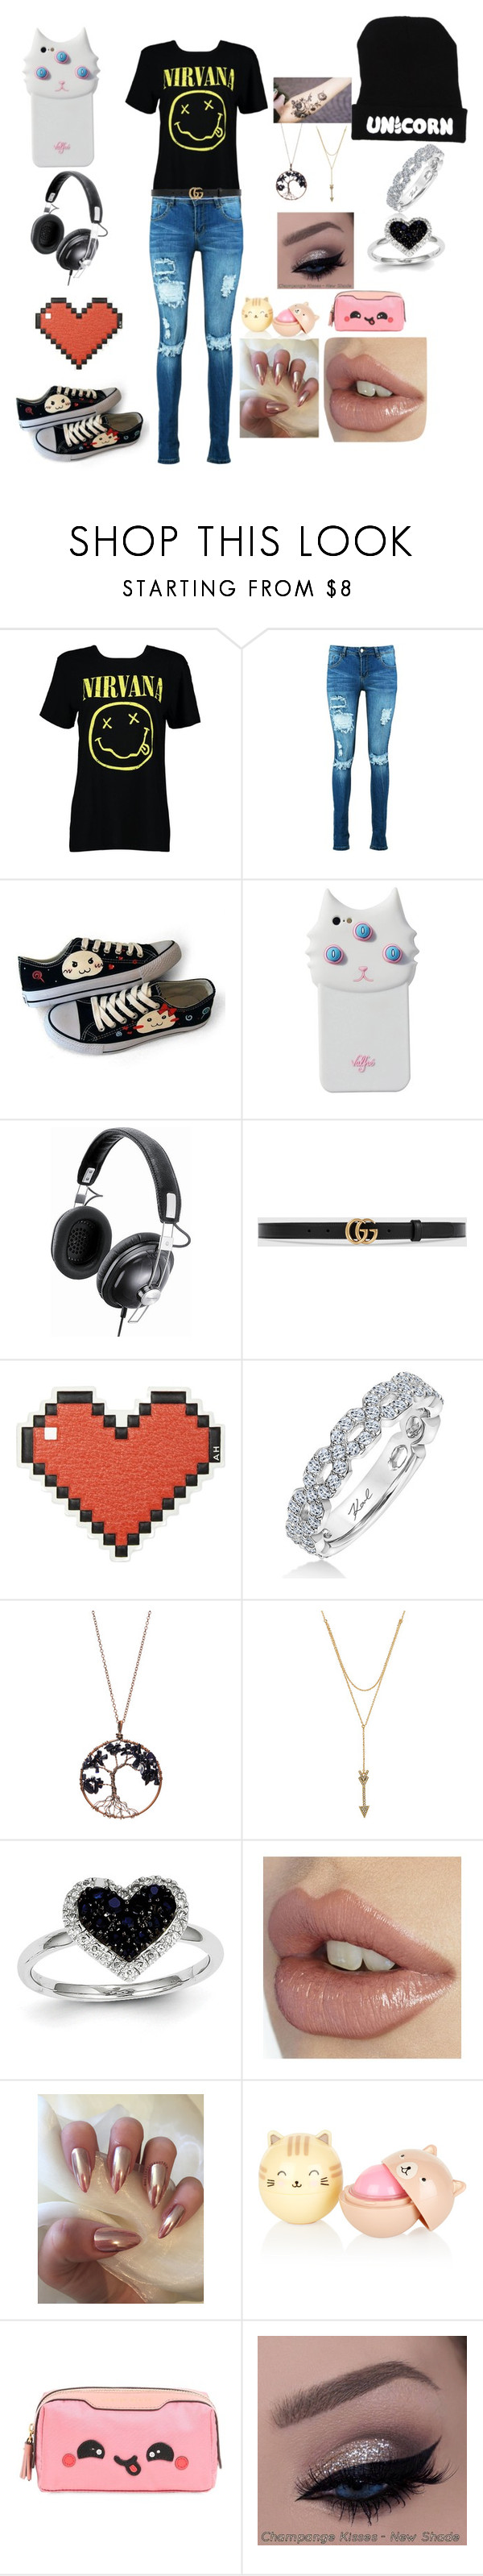 """""""random"""" by anime-venus-ghoul on Polyvore featuring Boohoo, HVBAO, Valfré, Panasonic, Gucci, Anya Hindmarch, Karl Lagerfeld, Braided Birch, Rebecca Minkoff and Kevin Jewelers"""